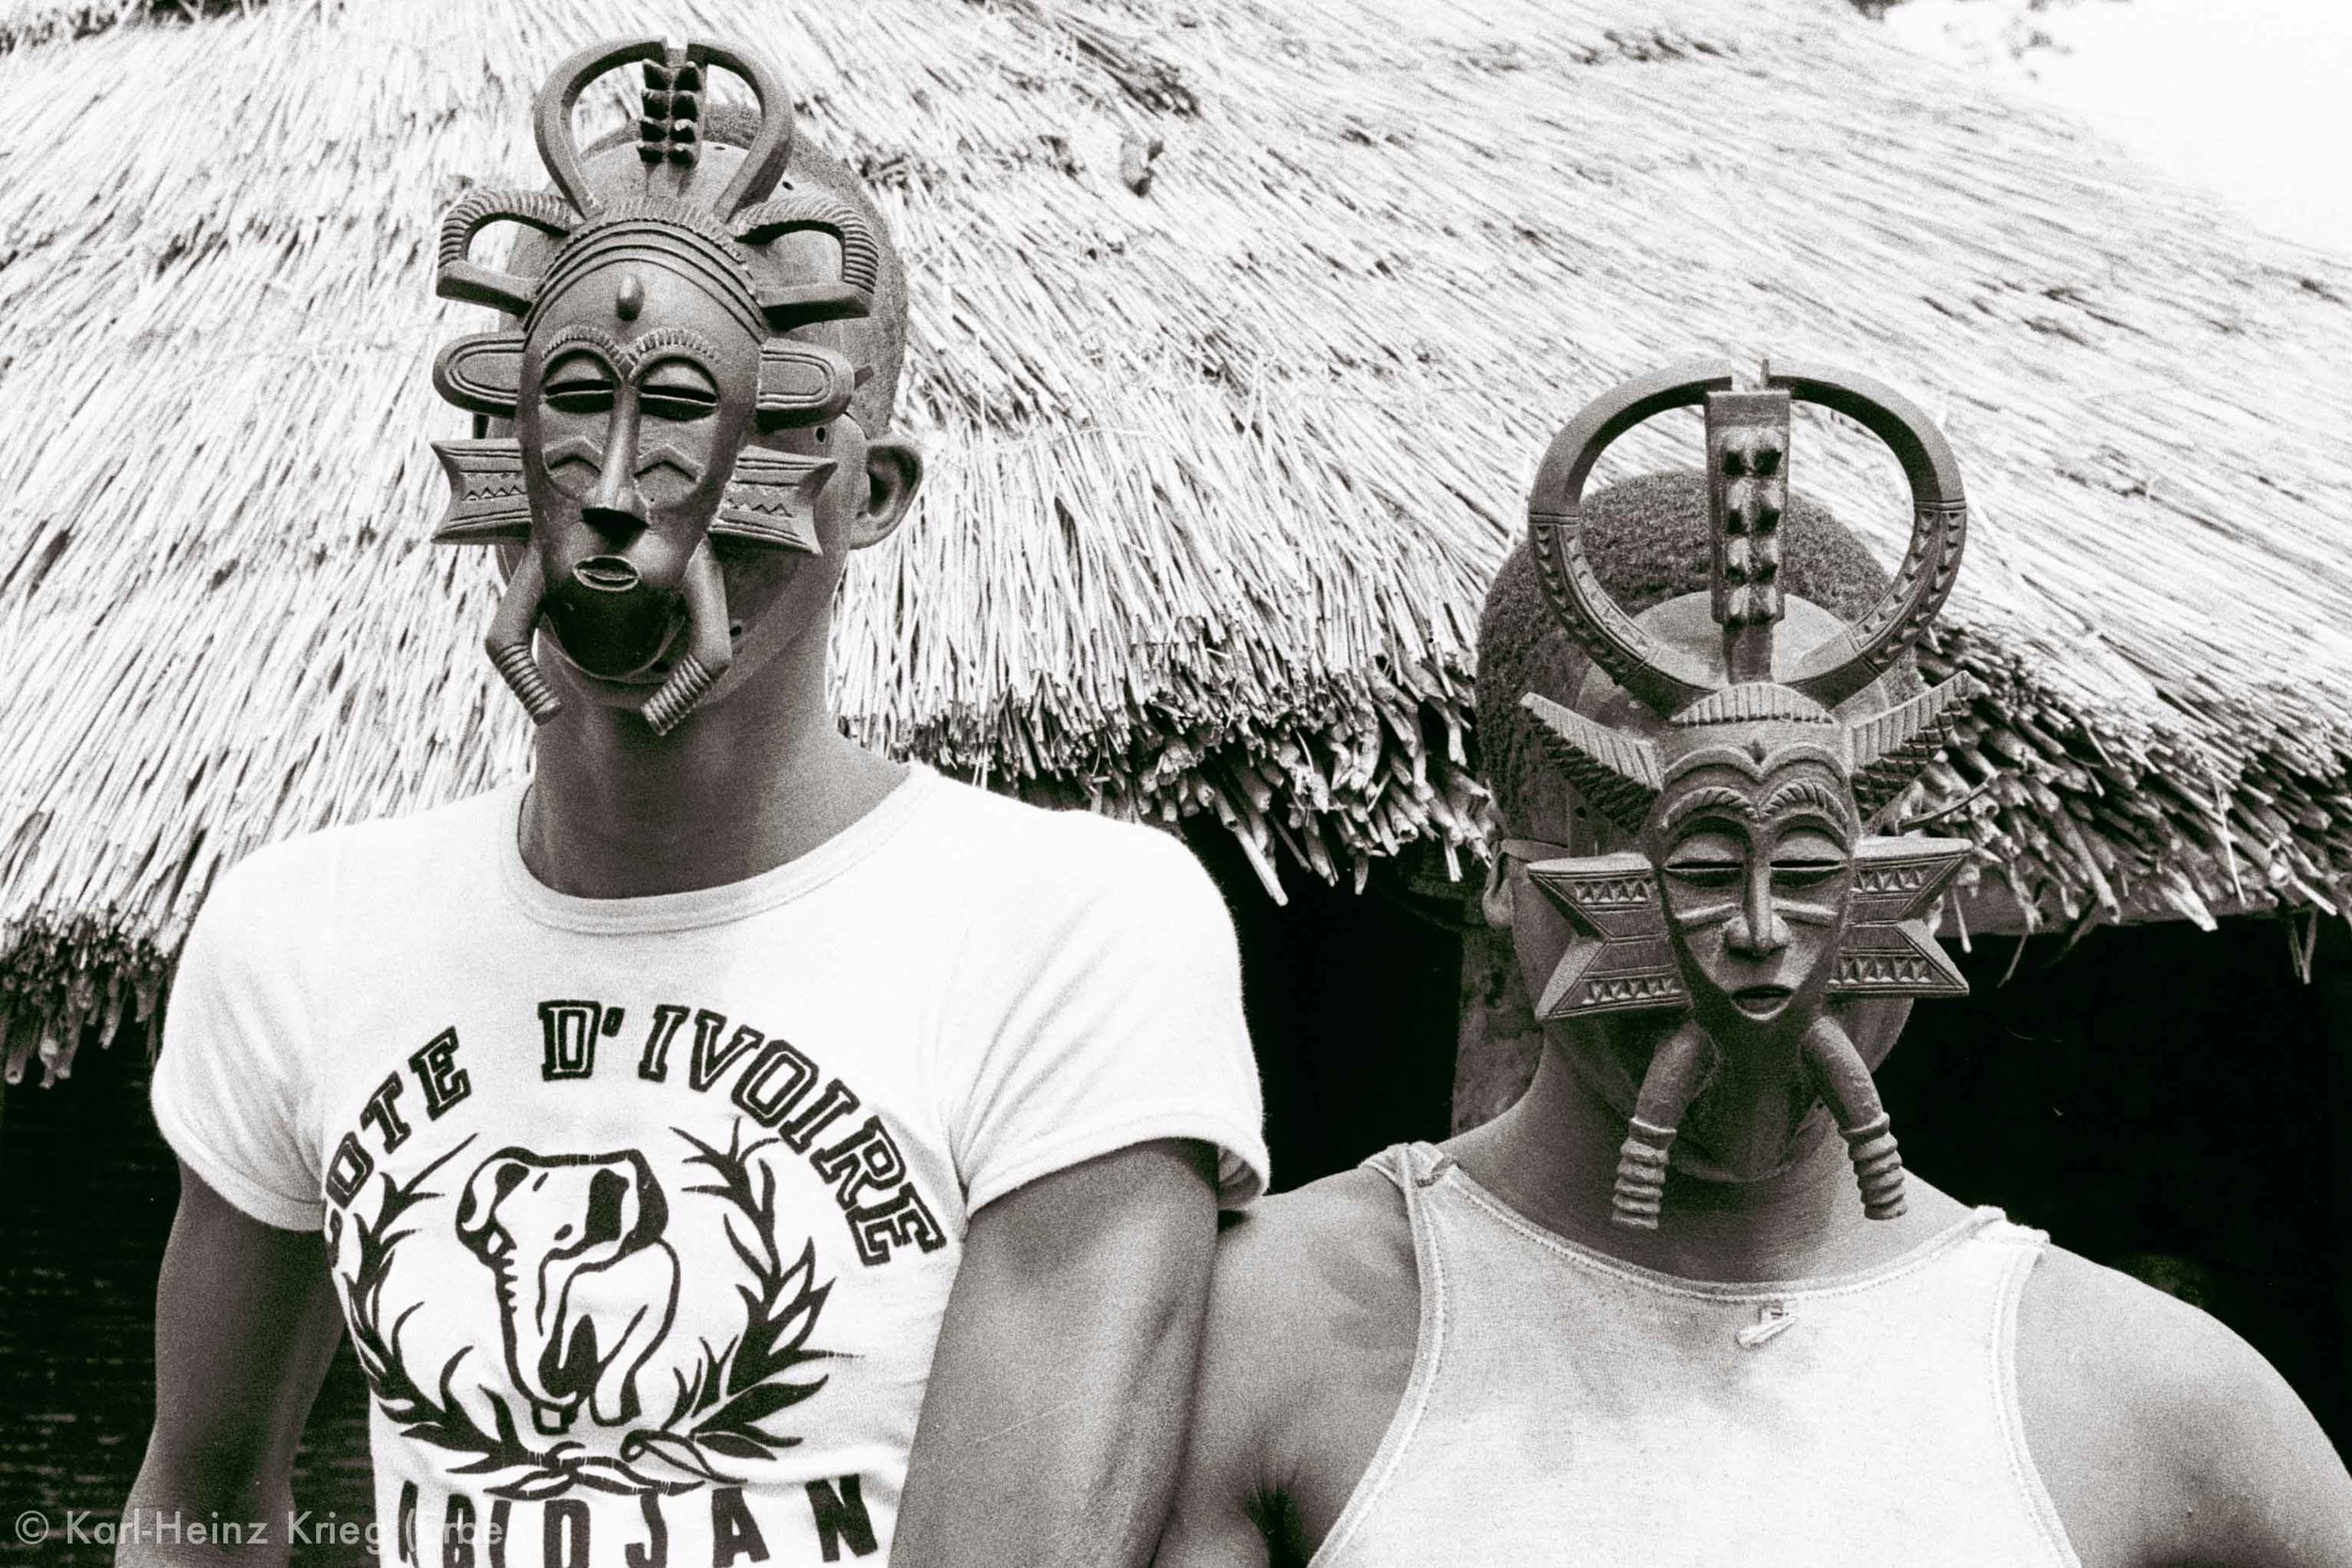 Two  kodaliyèhè  masks carved by Sécondjéwin Dagnogo. Old mask (left) carved in about 1965 and used by the Fono group of Poundiou. New mask (right) carved as an replacement for the old mask in 1977. Poundiou (Region of Boundiali, Côte d'Ivoire), 1977. Photo: Karl-Heinz Krieg